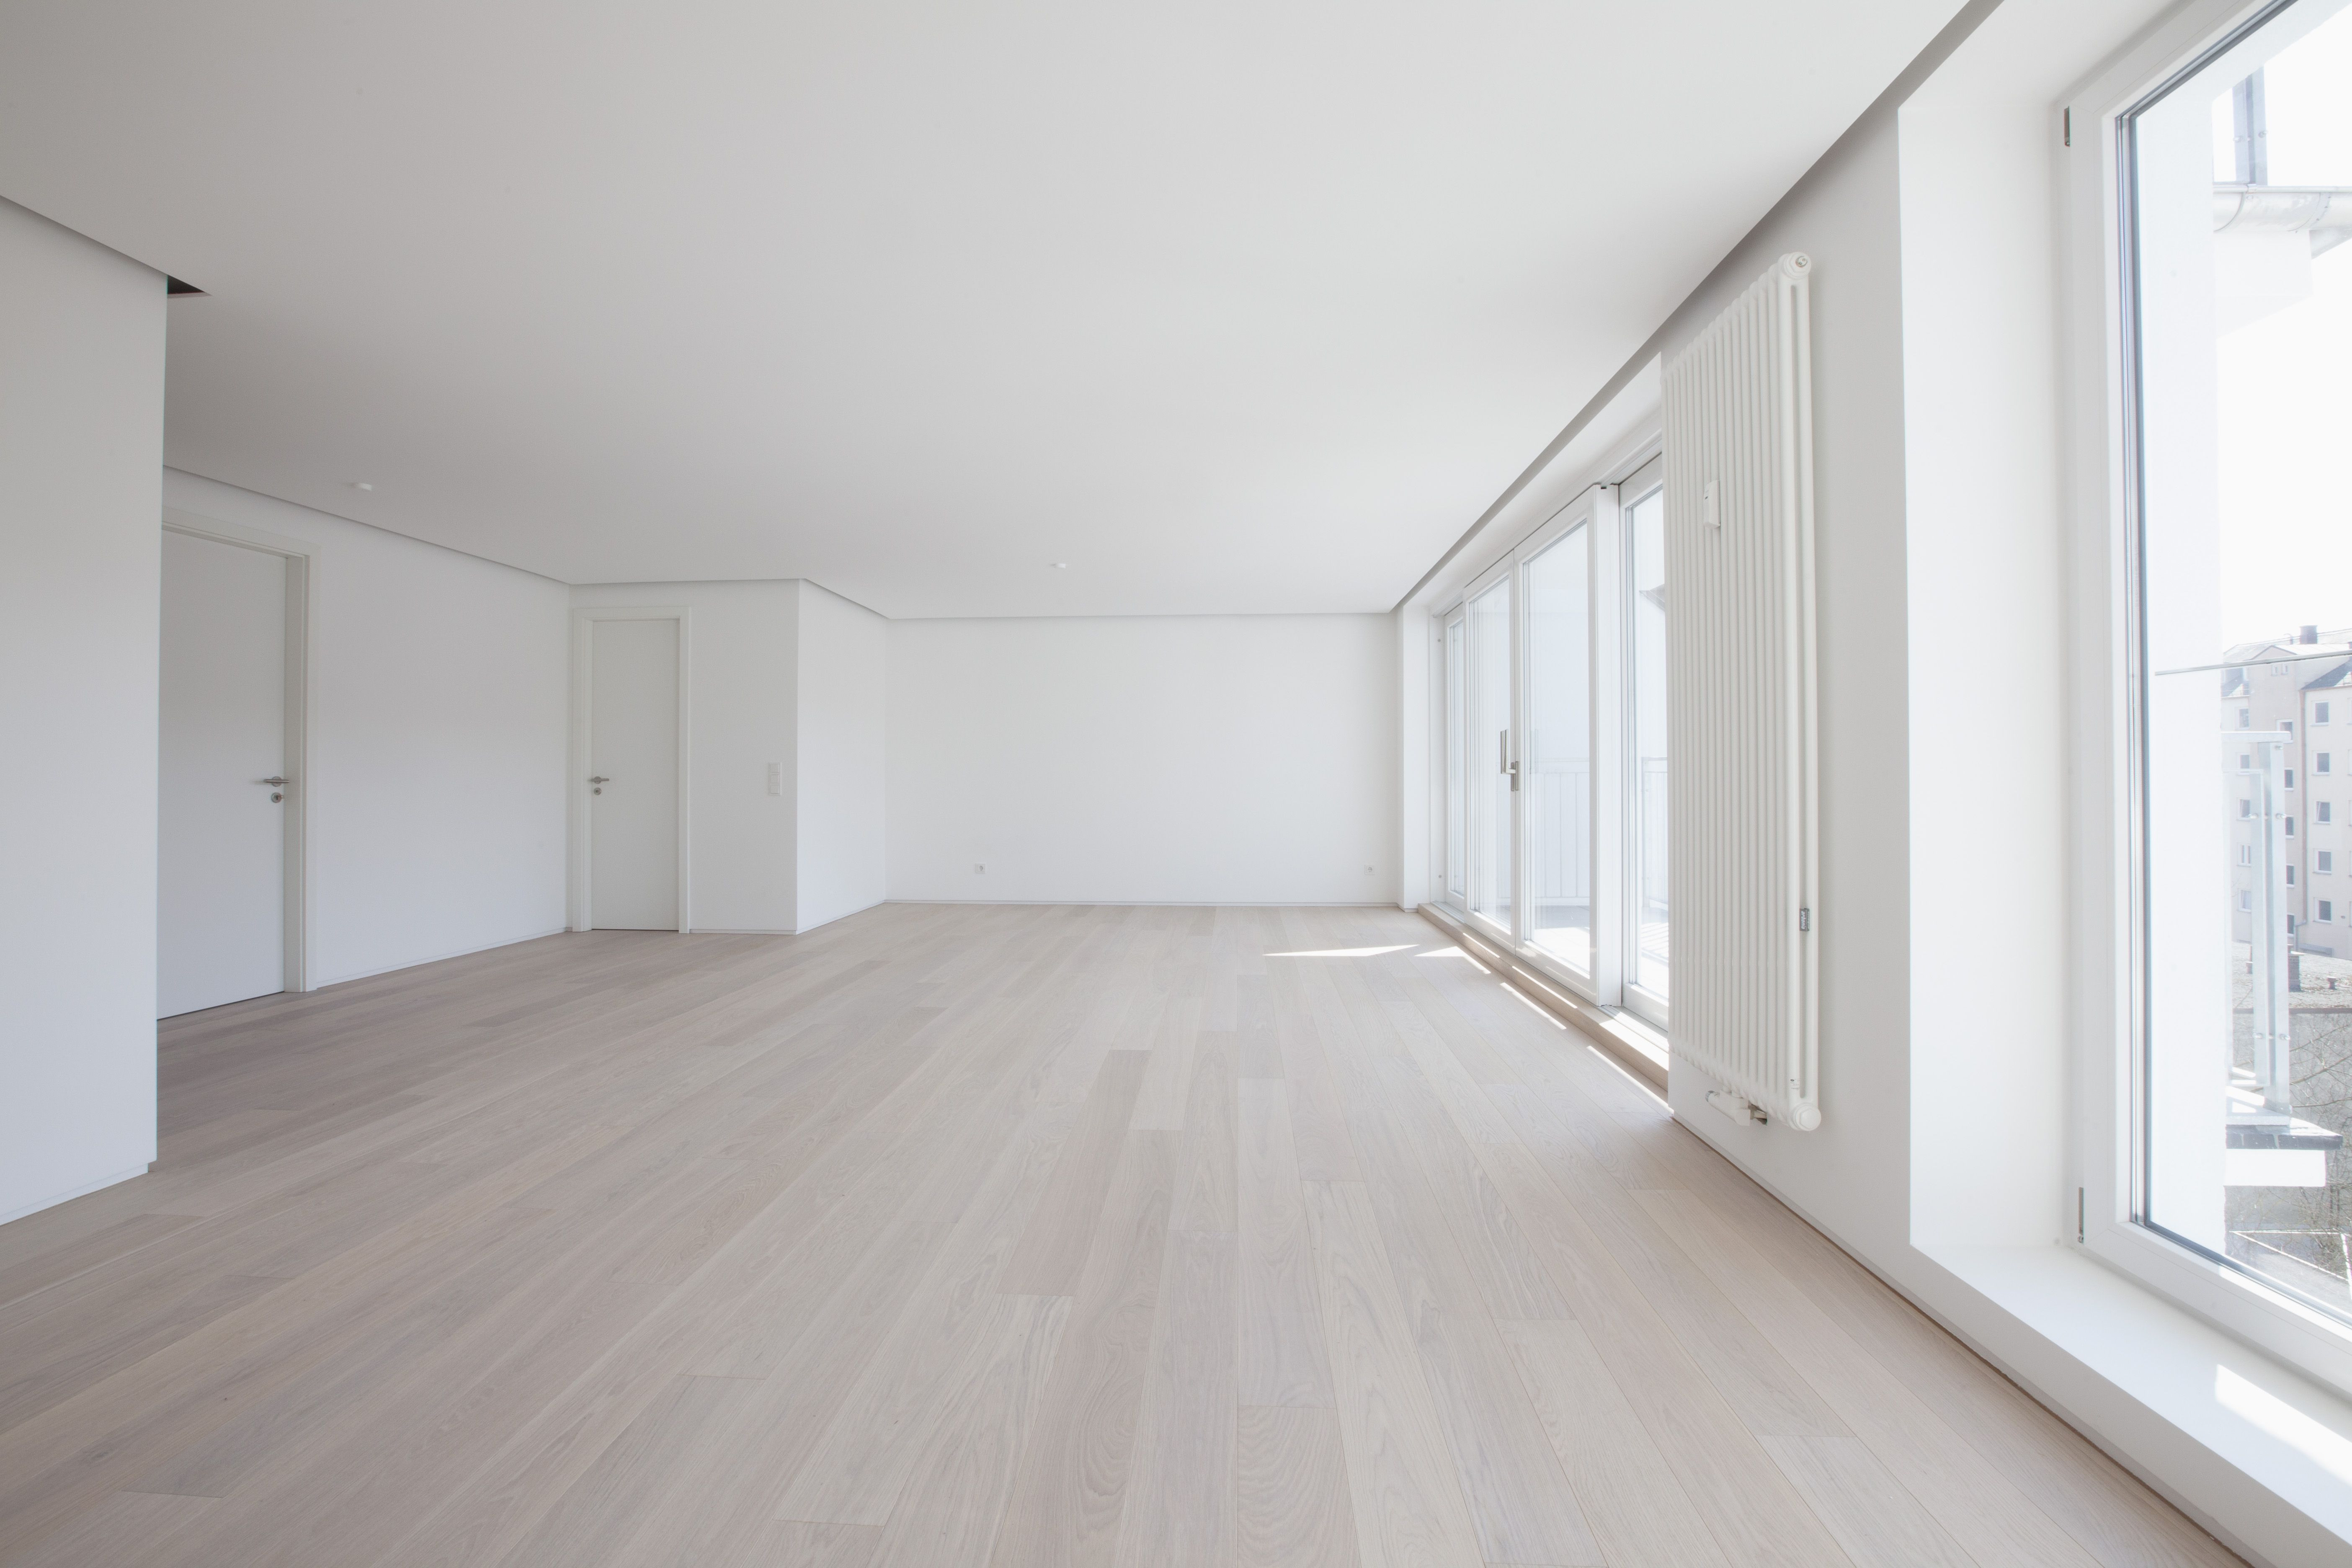 5 inch red oak hardwood flooring of basics of favorite hybrid engineered wood floors pertaining to empty living room in modern apartment 578189139 58866f903df78c2ccdecab05